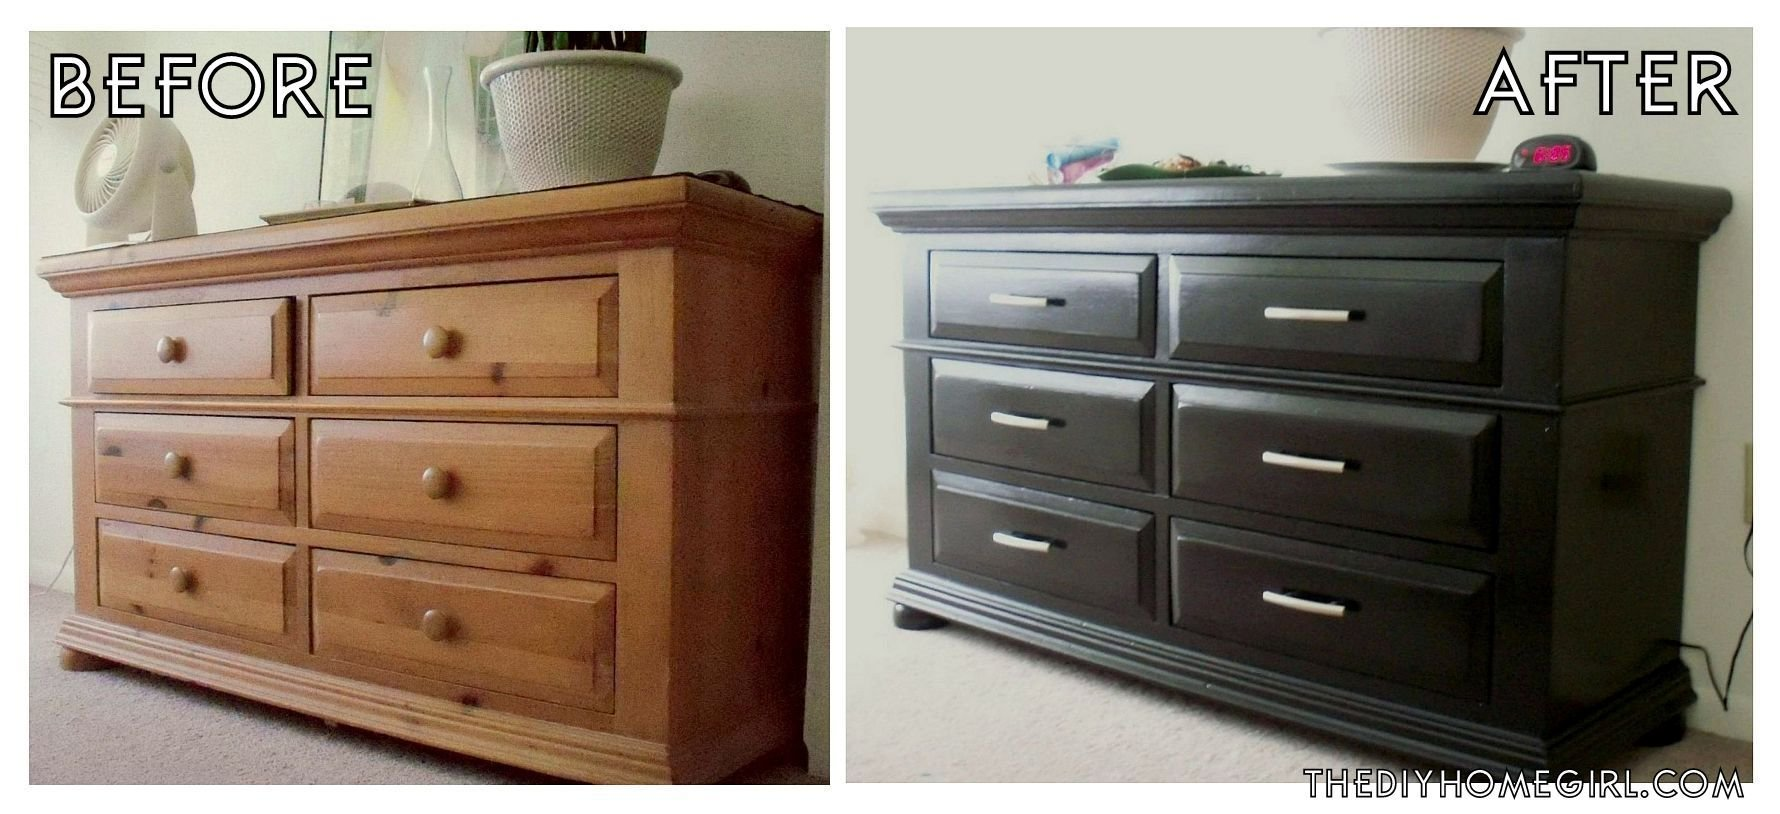 Best Top 20 Refinishing Bedroom Furniture Black 2018 Interior Exterior Ideas With Pictures